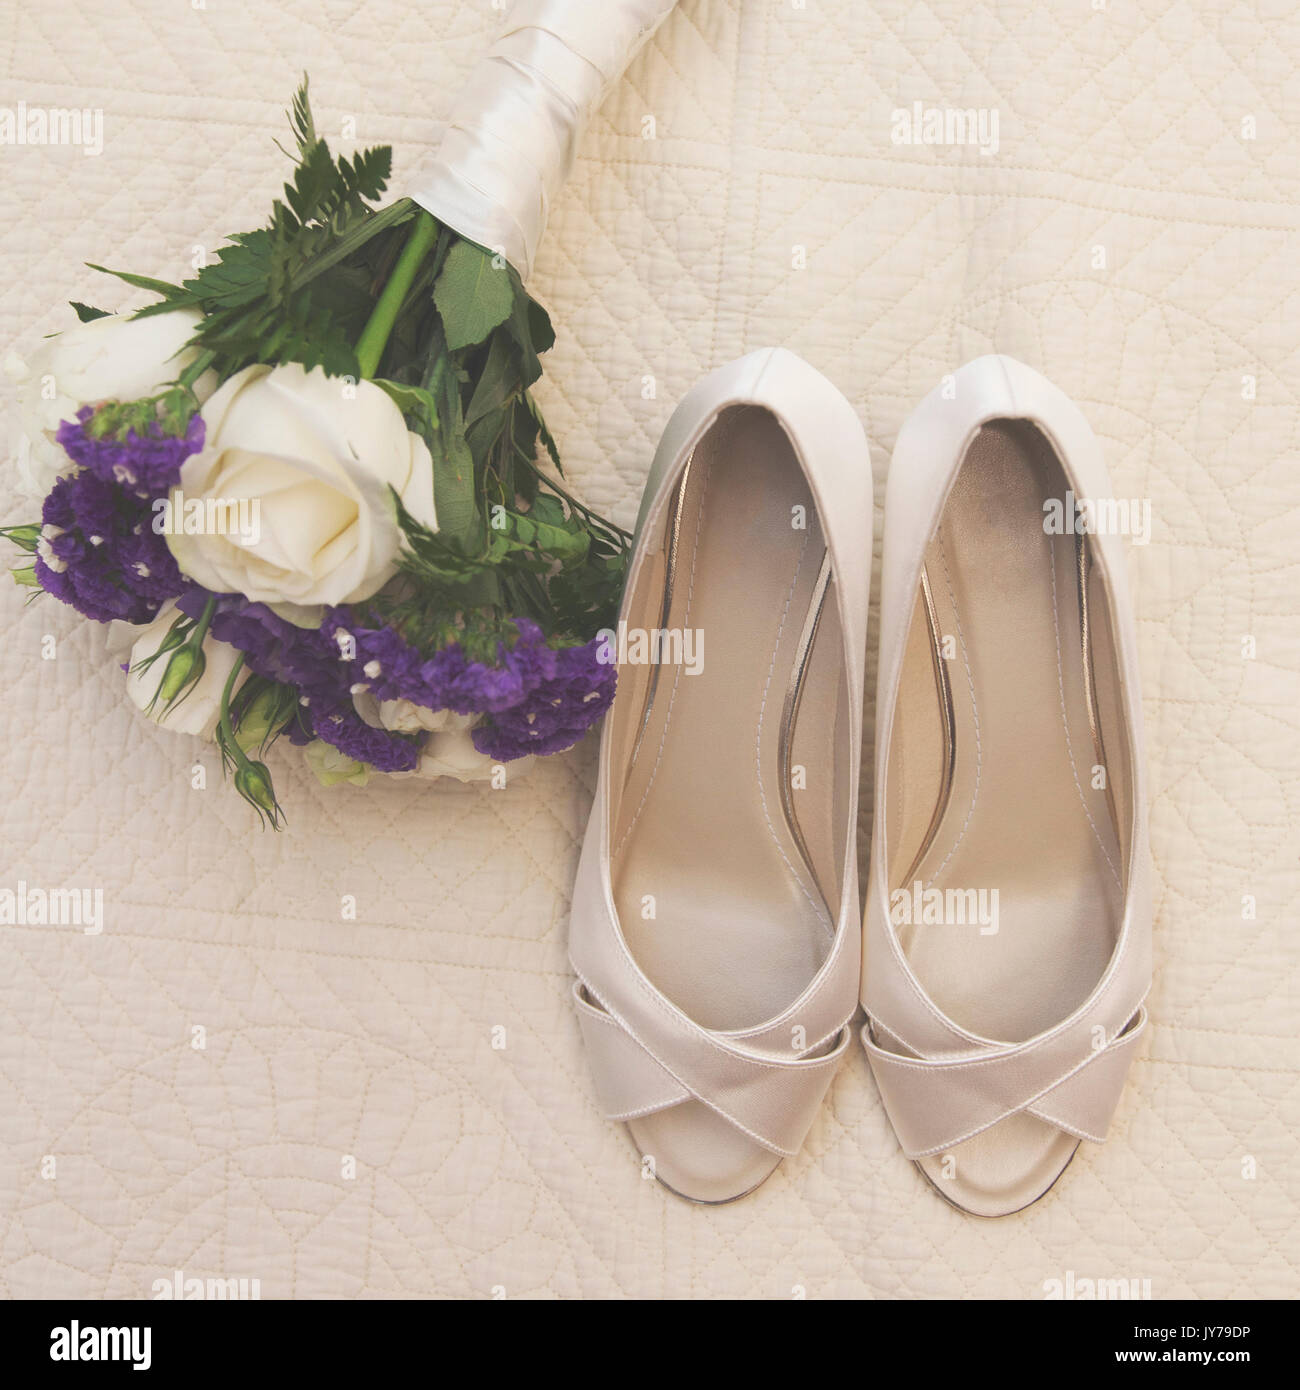 2c6f9e2a410 Wedding day detail. Bridal shoes and bouquet Stock Photo  154439762 ...